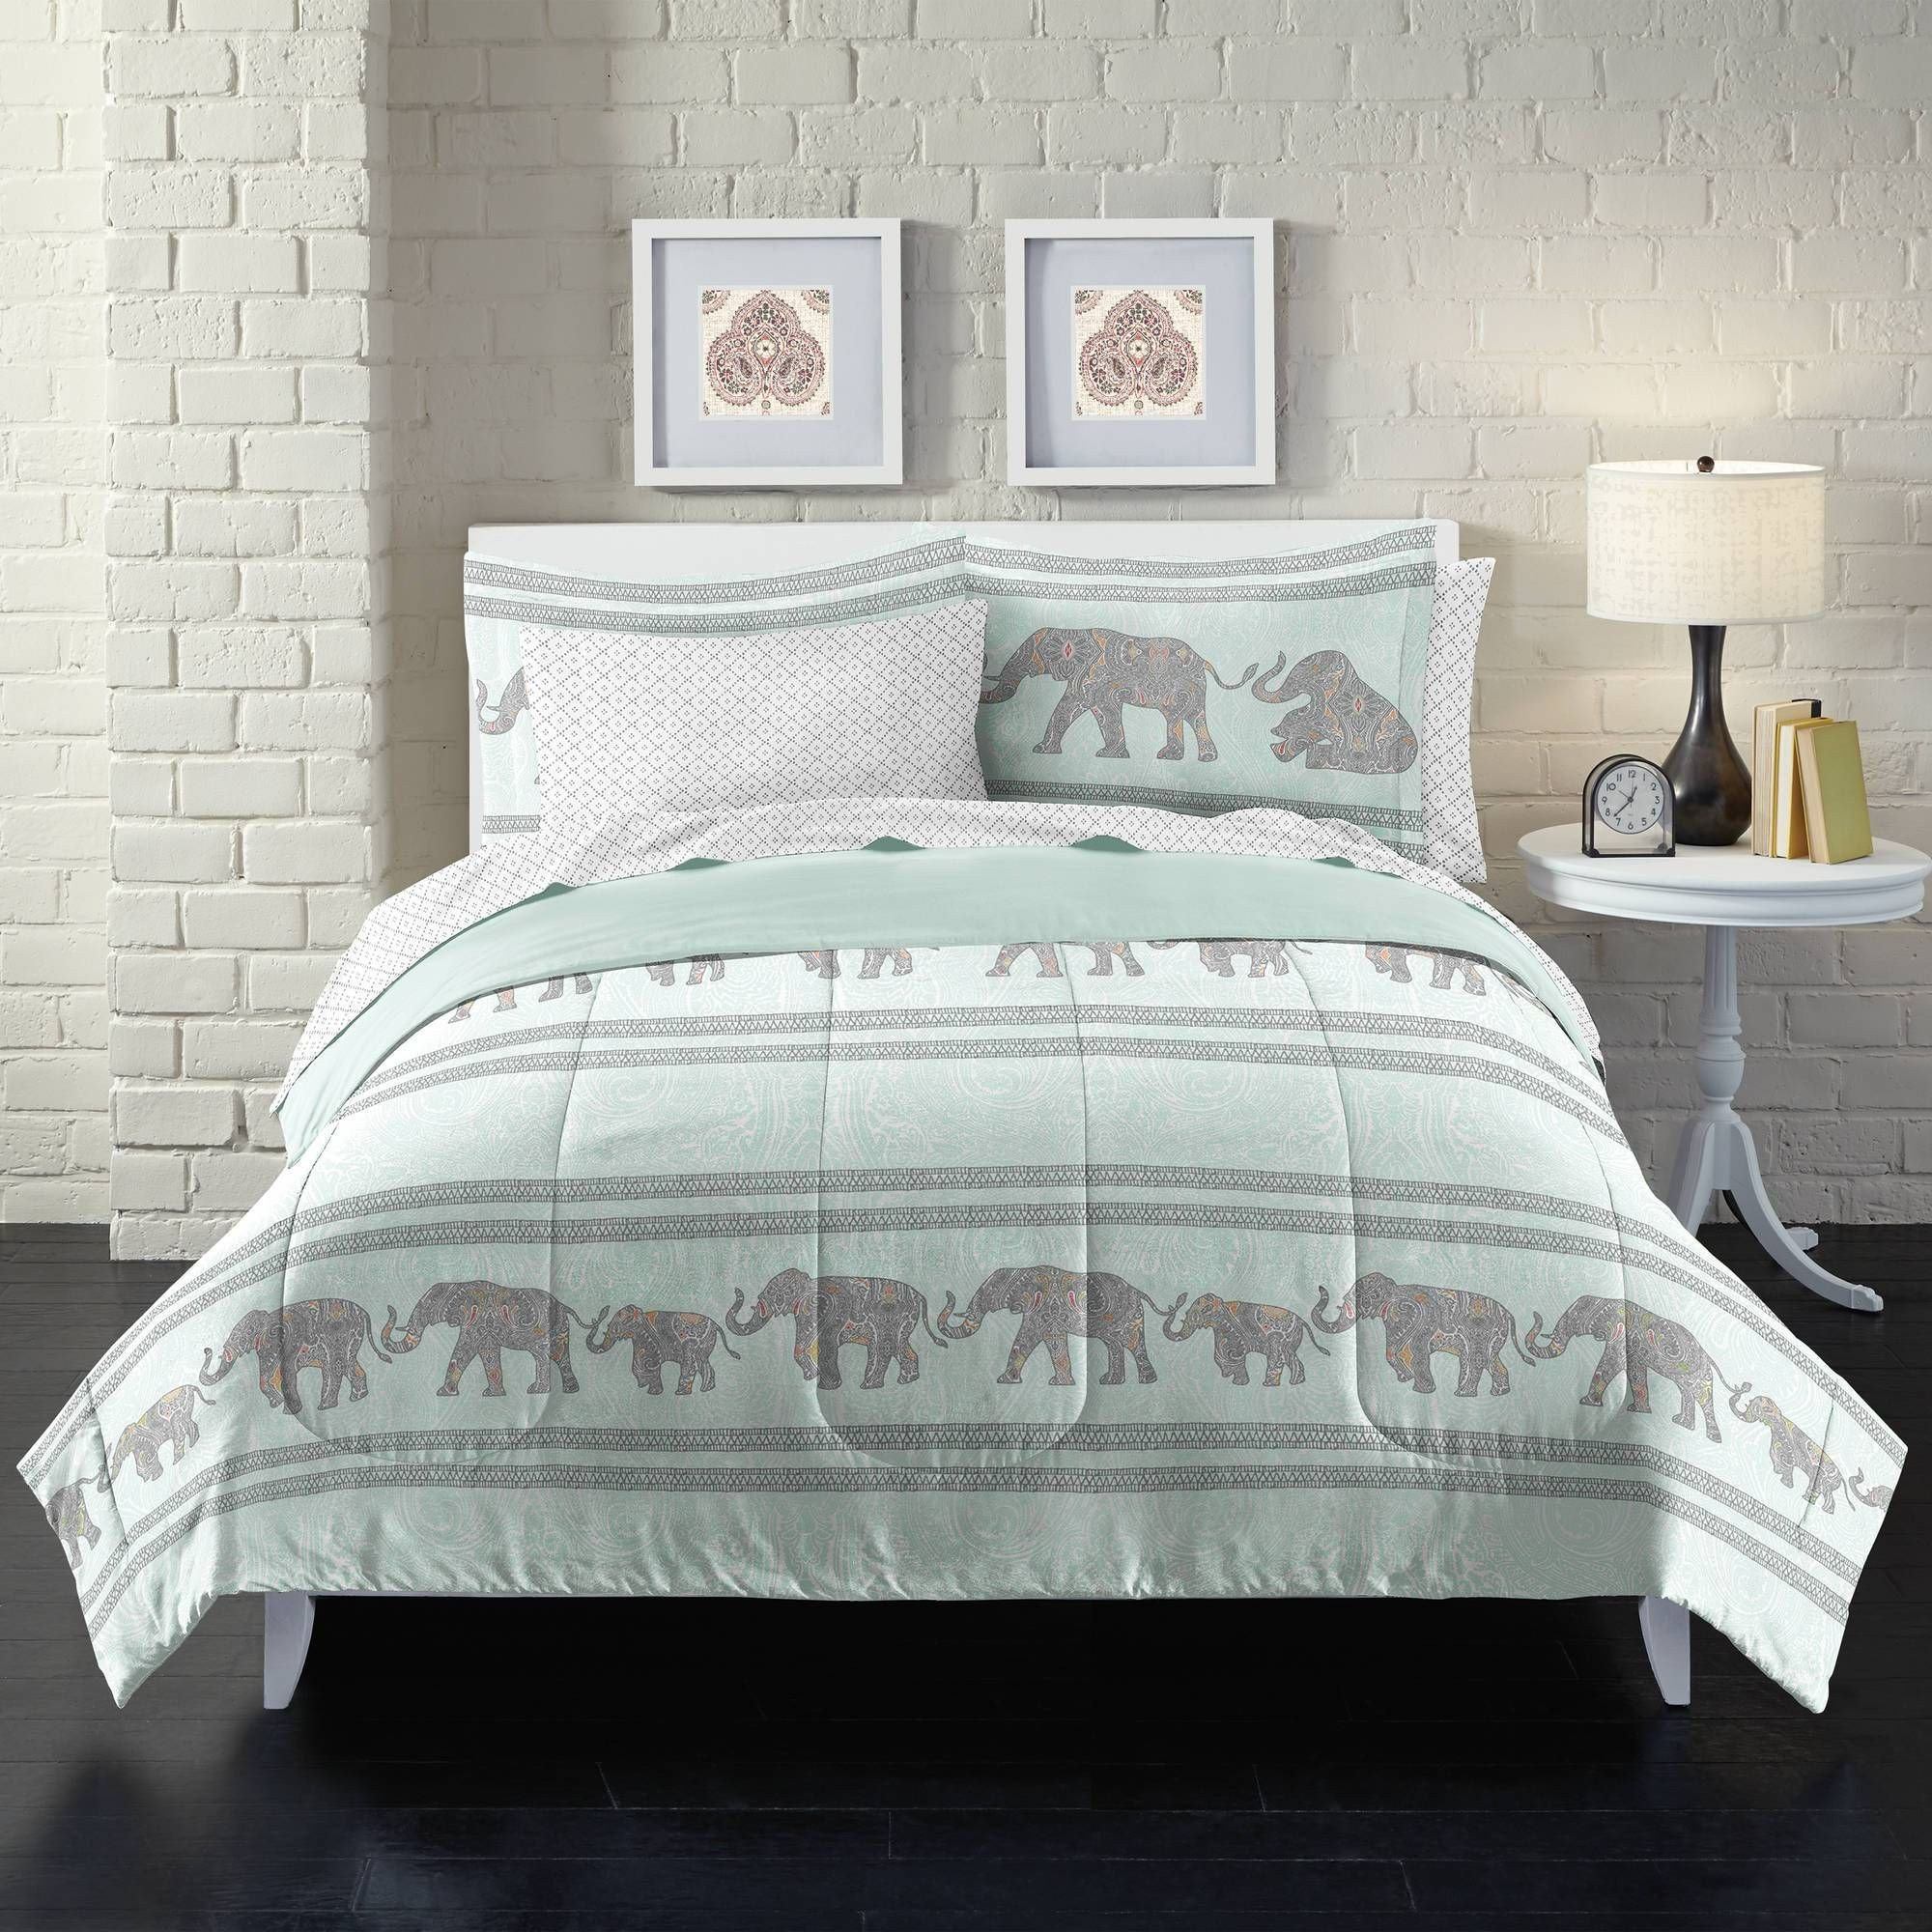 Bedroom Set Full Size Bed Beautiful Loft Style Boho Elephant Bed In A Bag Set Full Size New